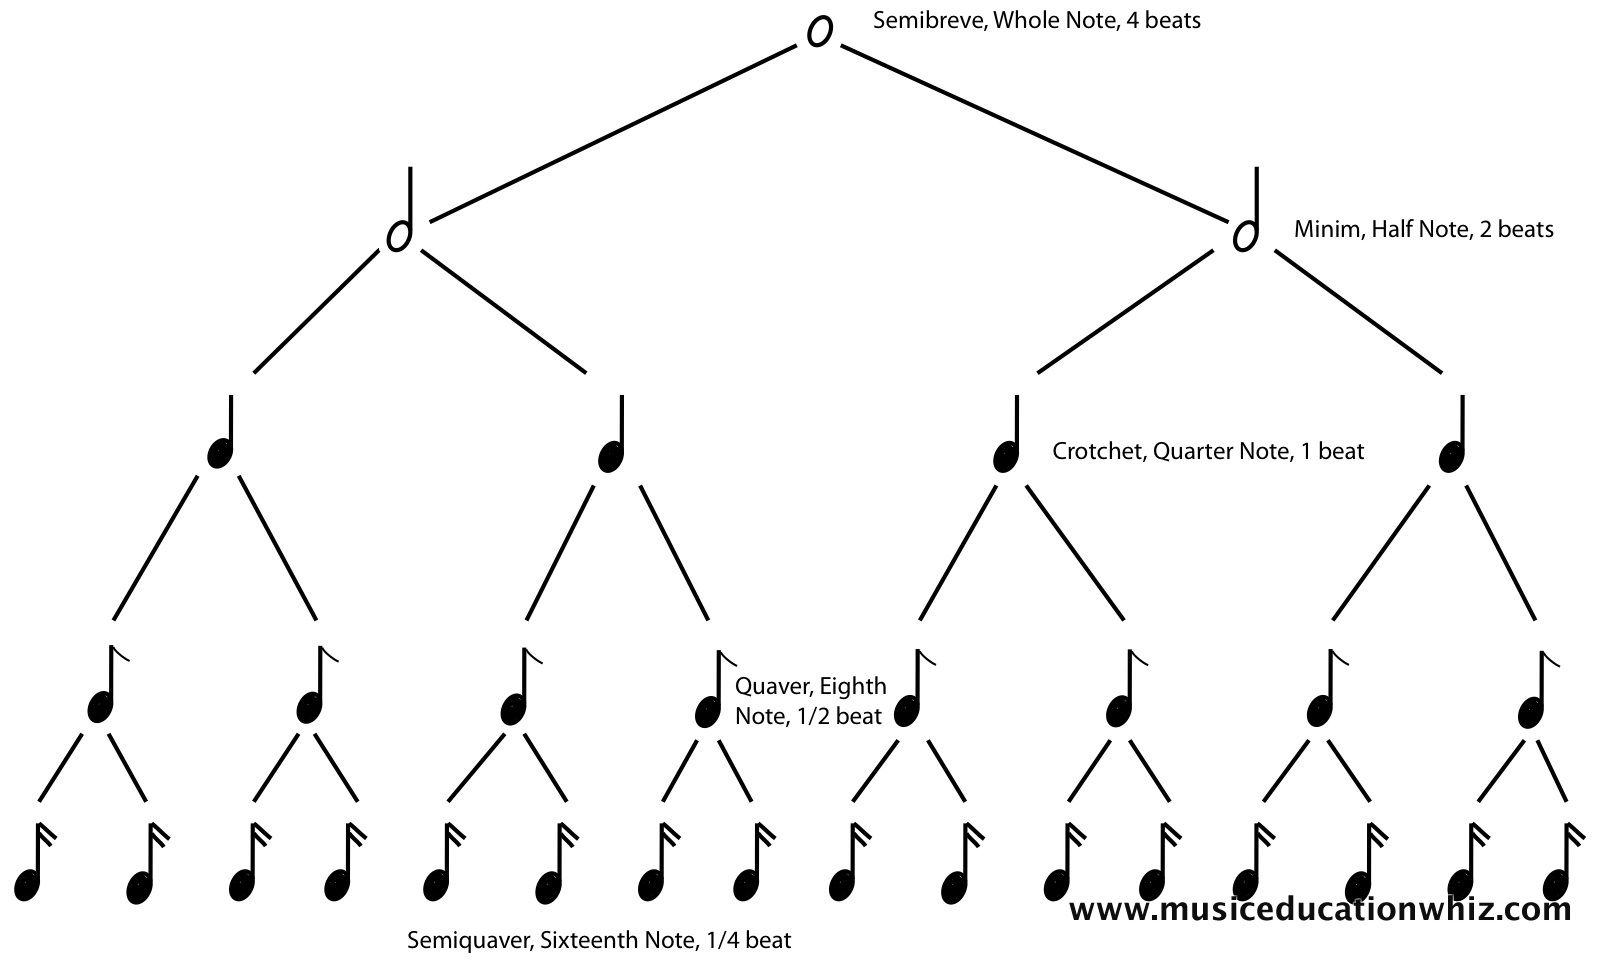 This Is An Image Of A Rhythm Tree From The Music Theory